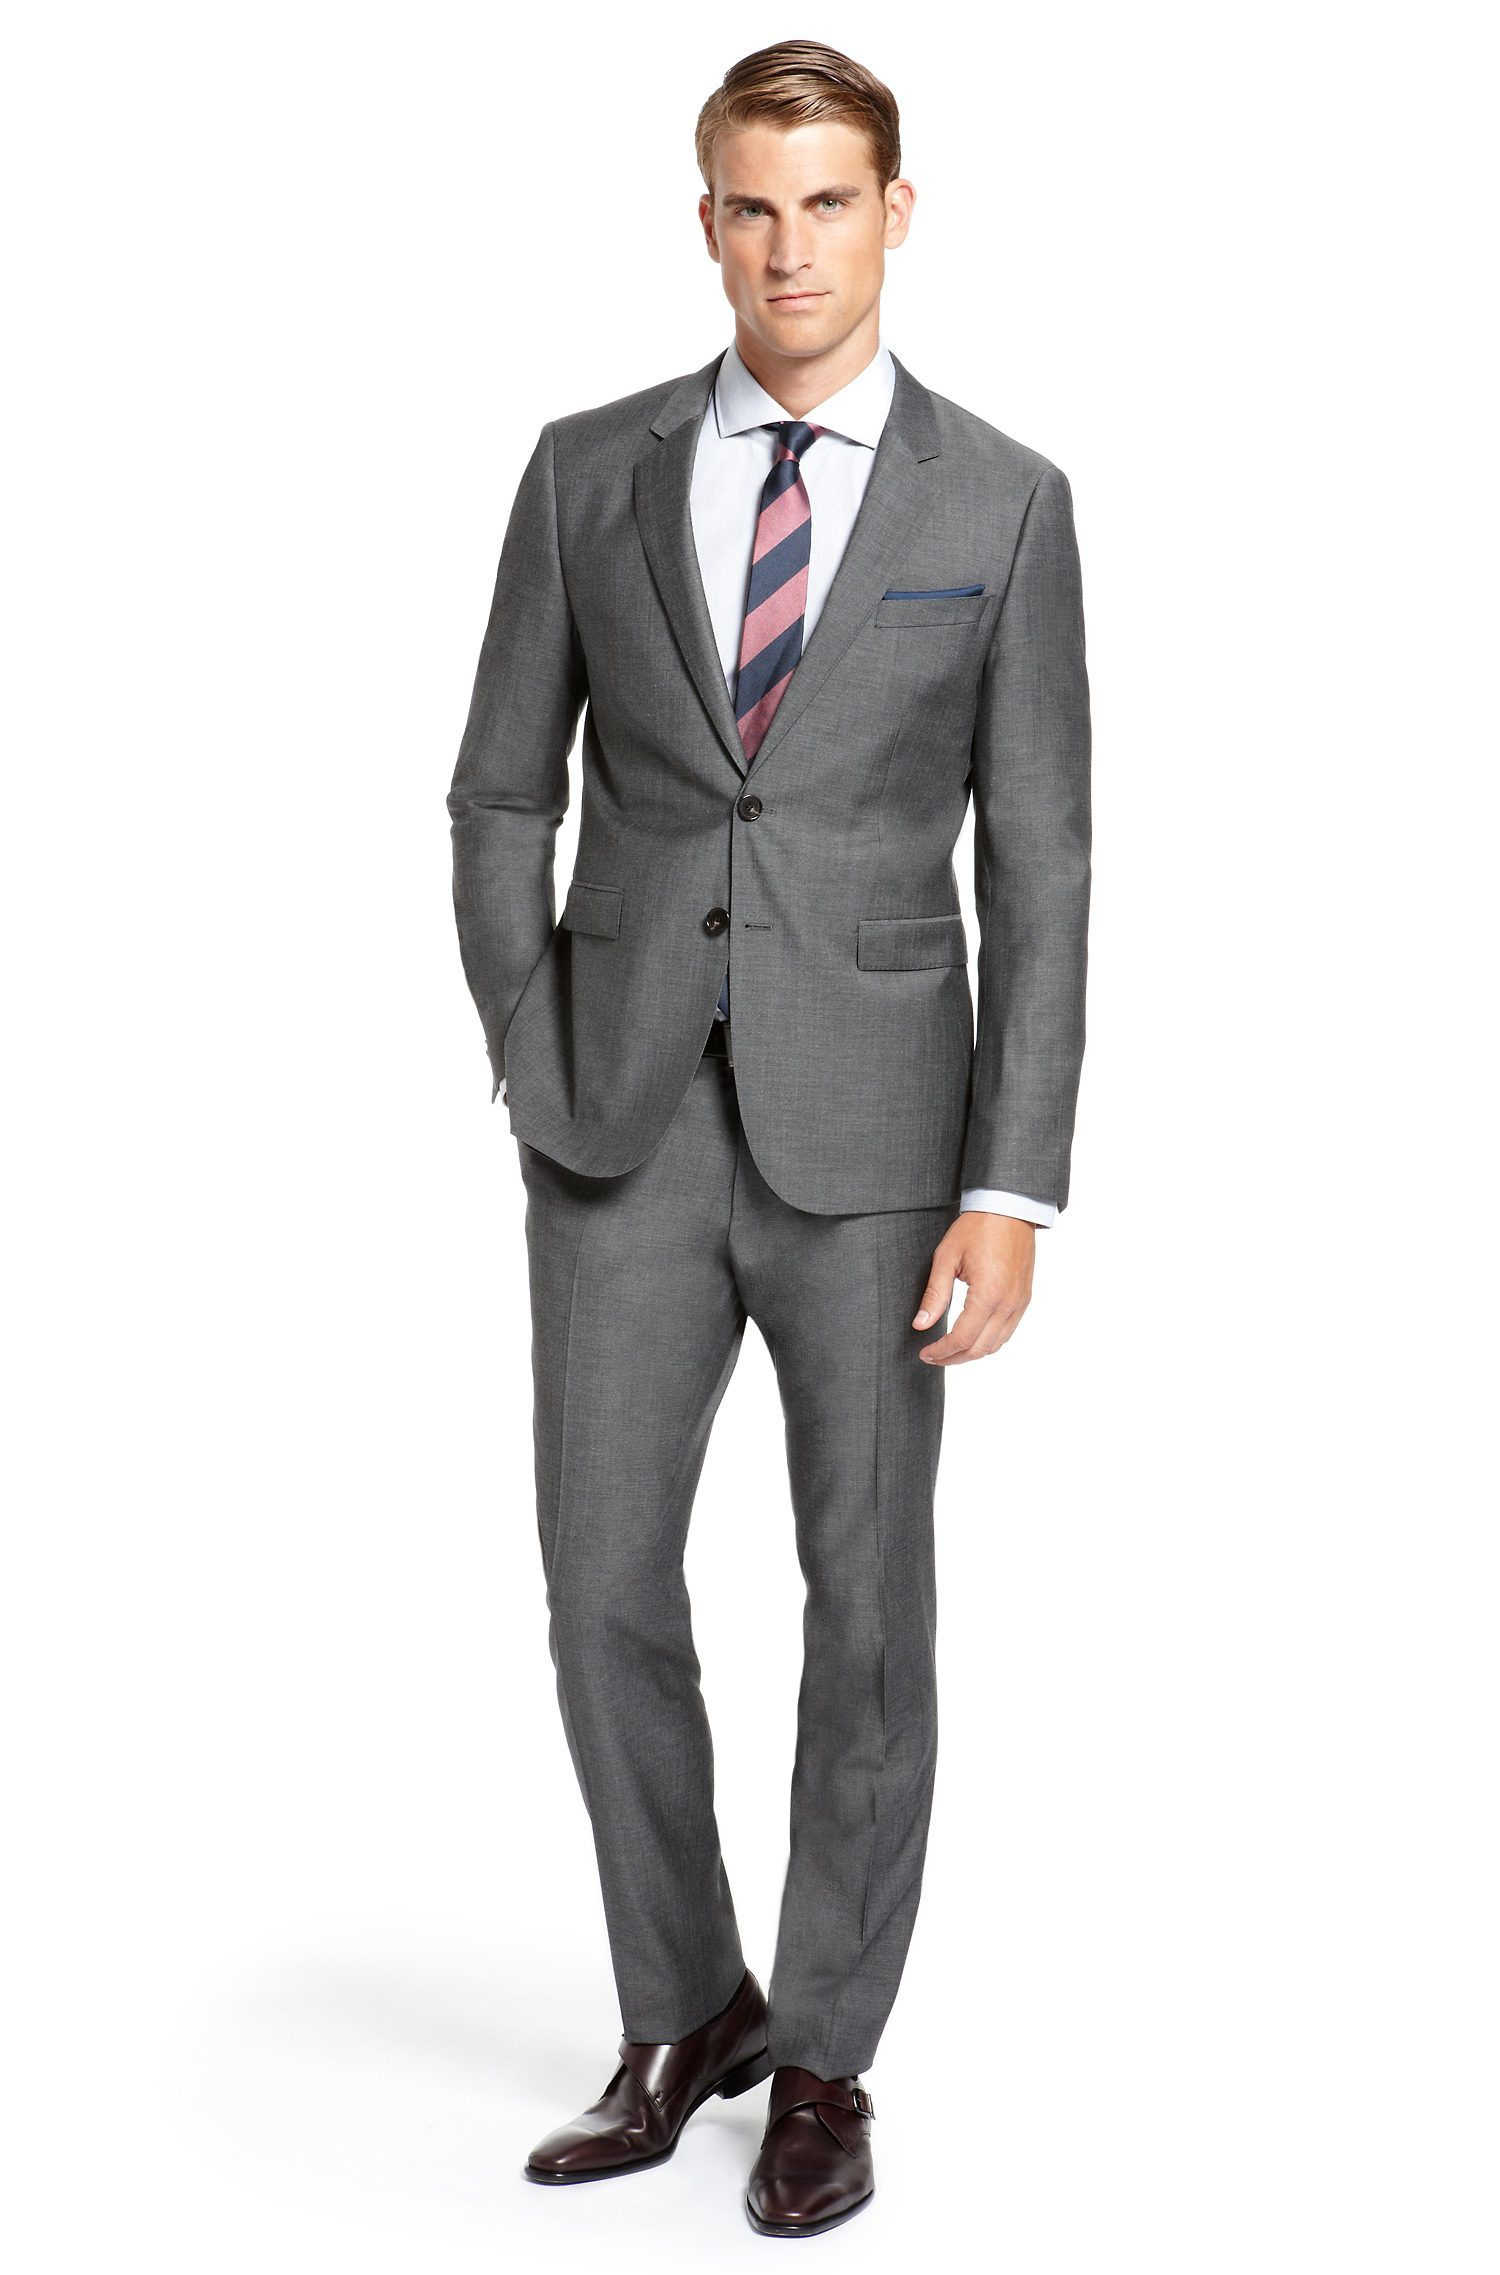 Find great deals on eBay for business suit for men. Shop with confidence.